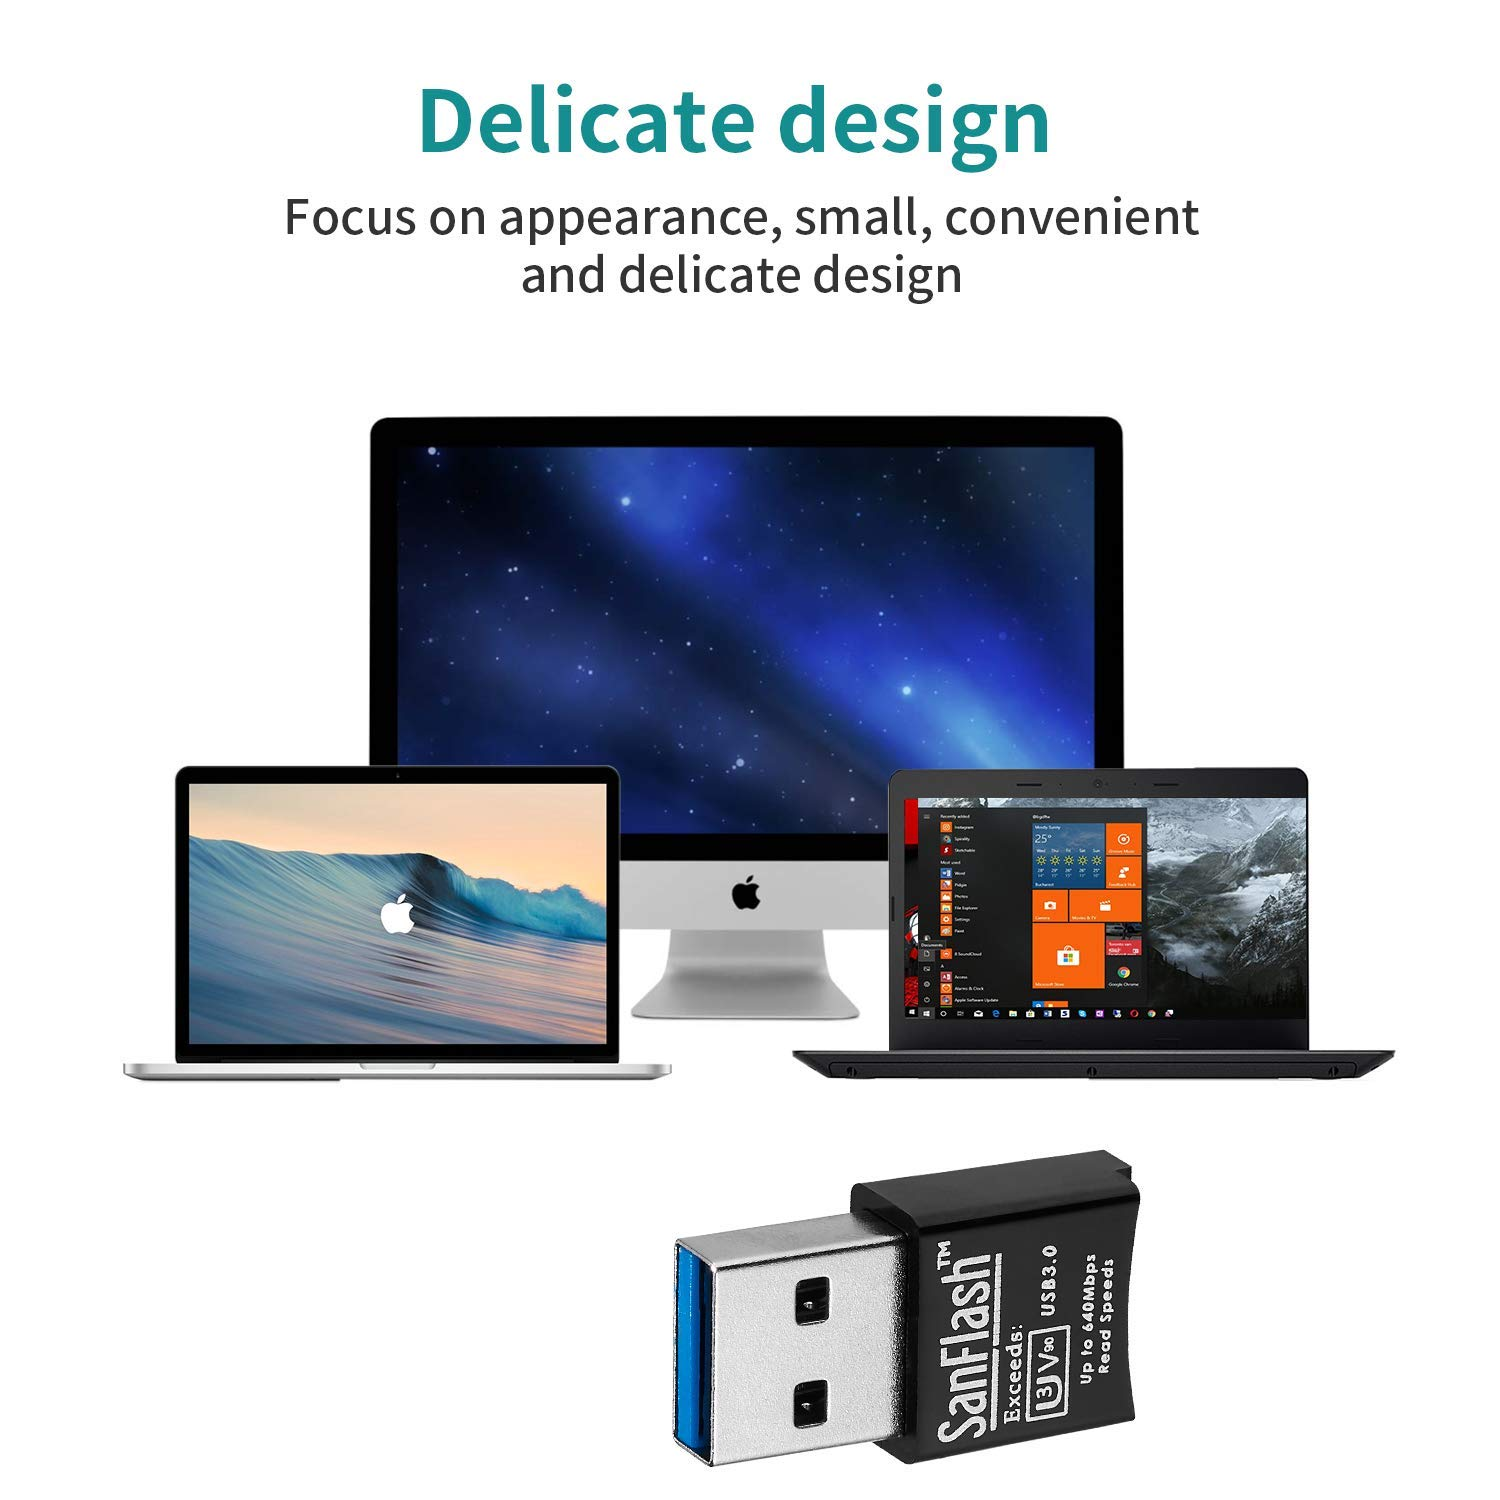 SanFlash PRO USB 3.0 Card Reader Works for Karbonn A19 Adapter to Directly Read at 5Gbps Your MicroSDHC MicroSDXC Cards